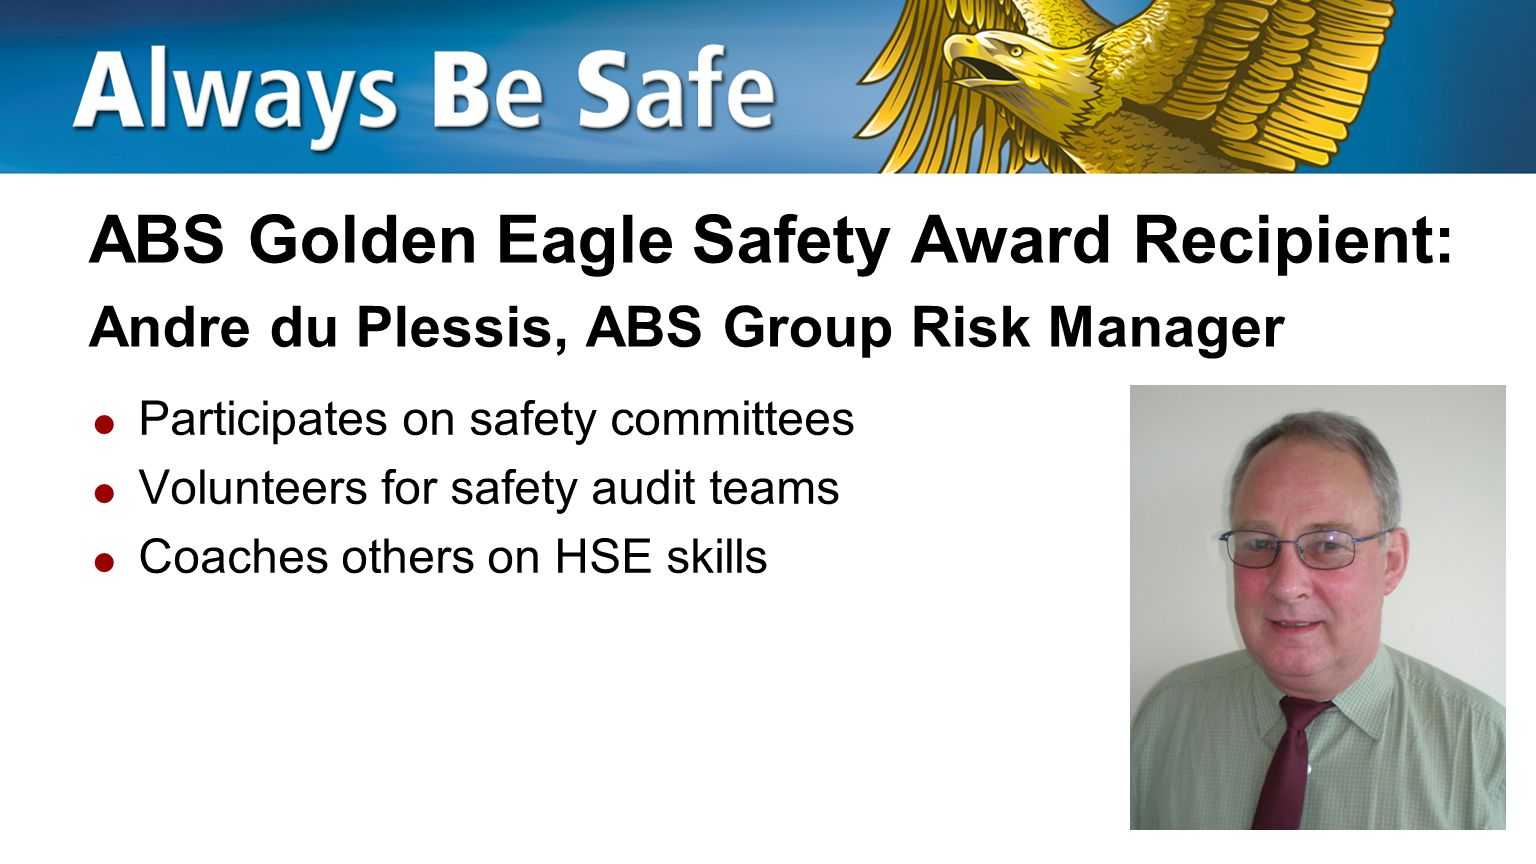 ABS Golden Eagle Safety Award Recipient: Andre du Plessis, ABS Group Risk Manager